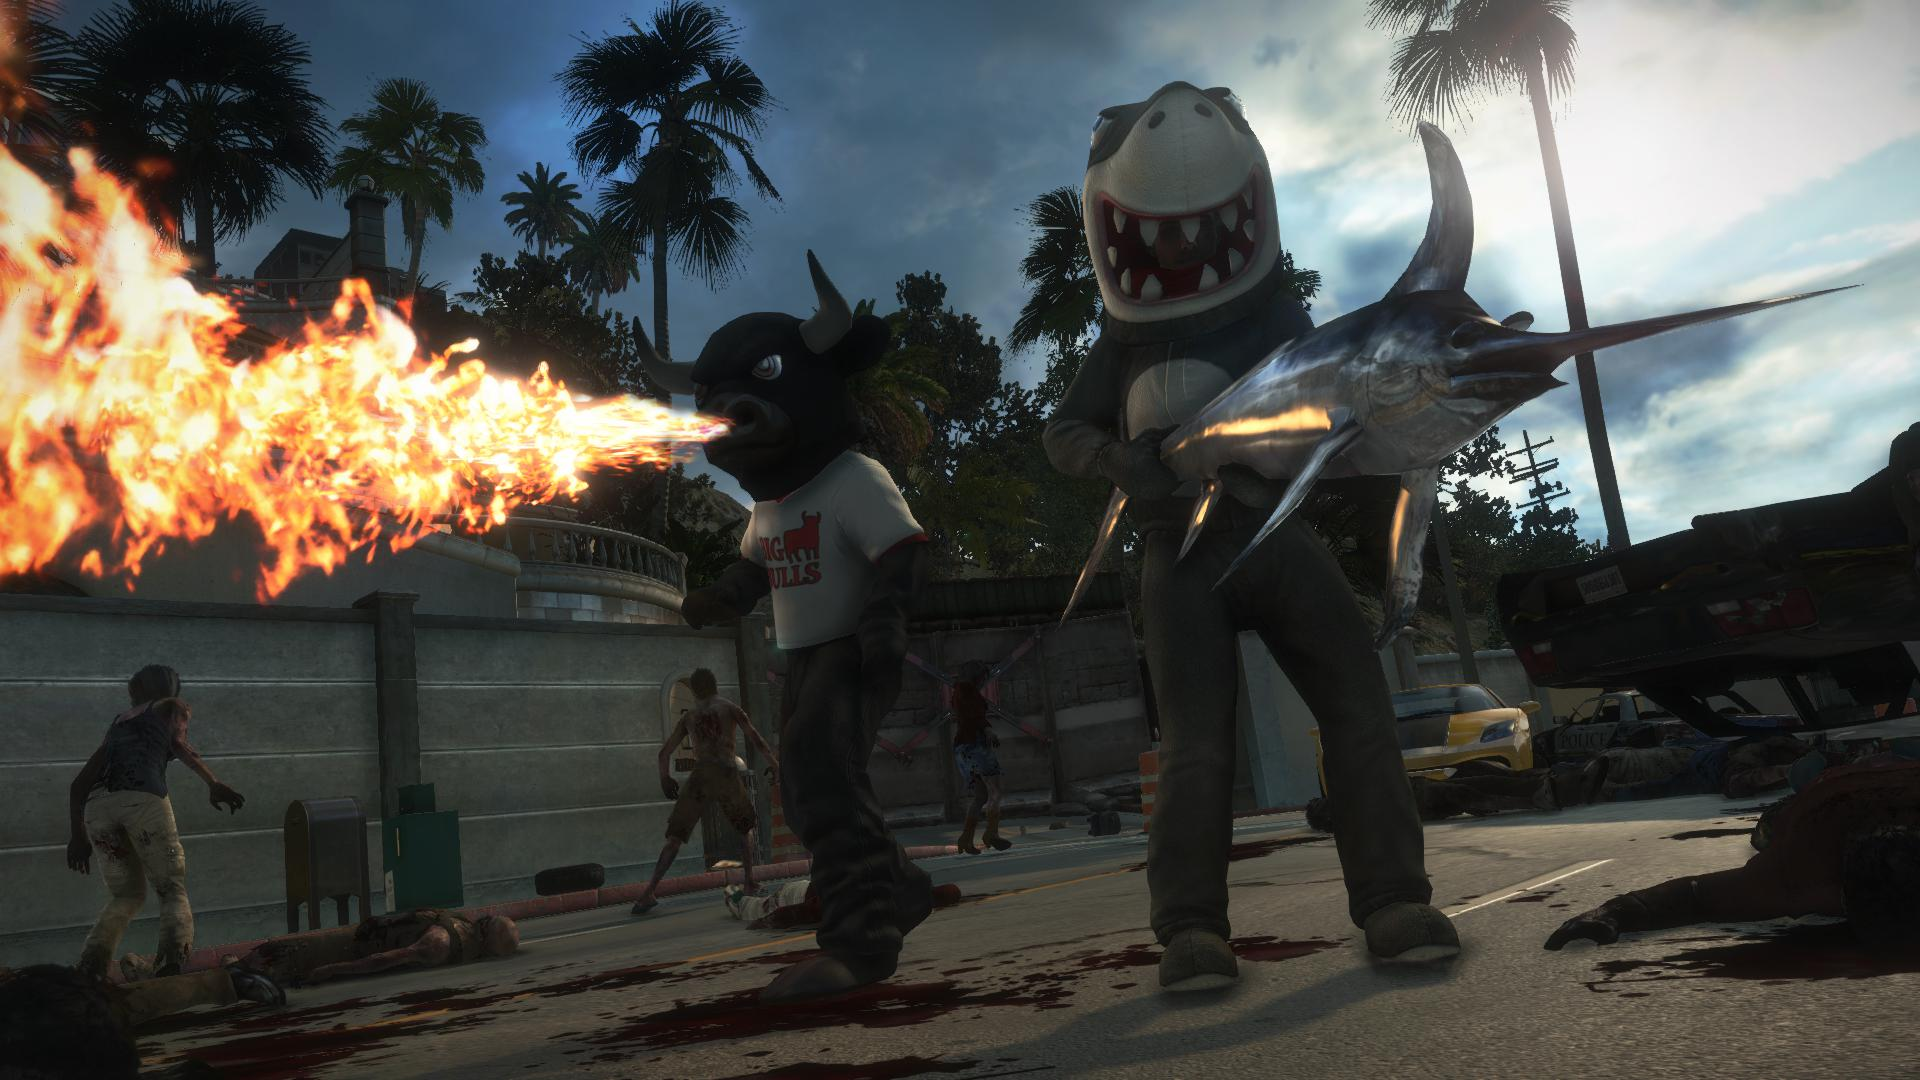 Dead rising 3 coming to pc in september blog kark jocke mod db malvernweather Images